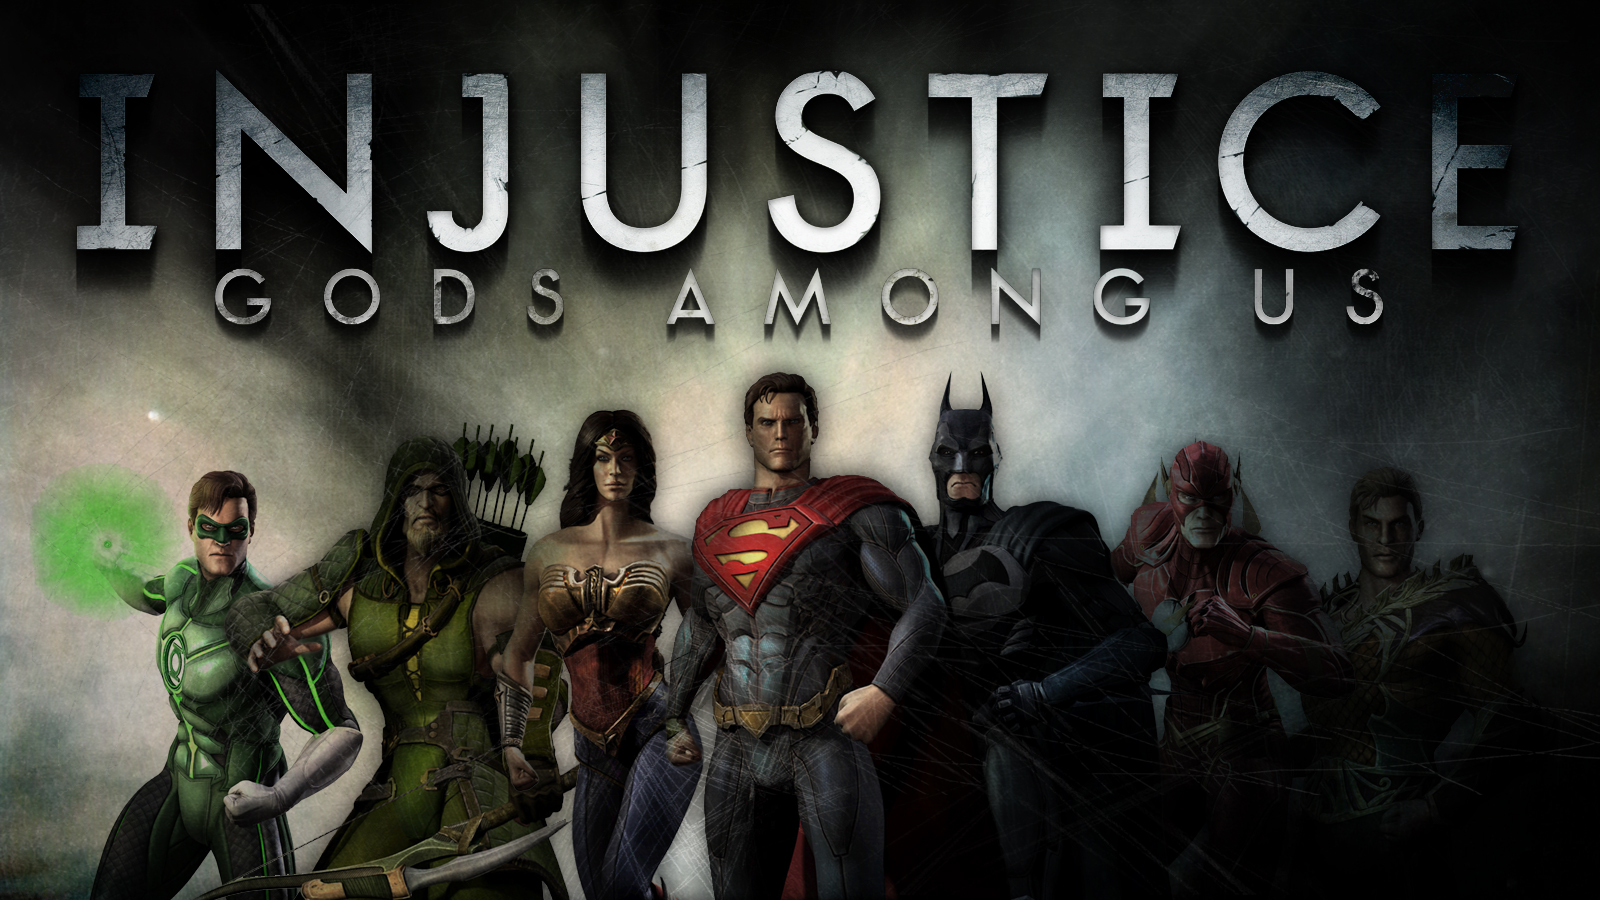 Injustice Gods Among Us Wallpaper By Squiddytron On Deviantart